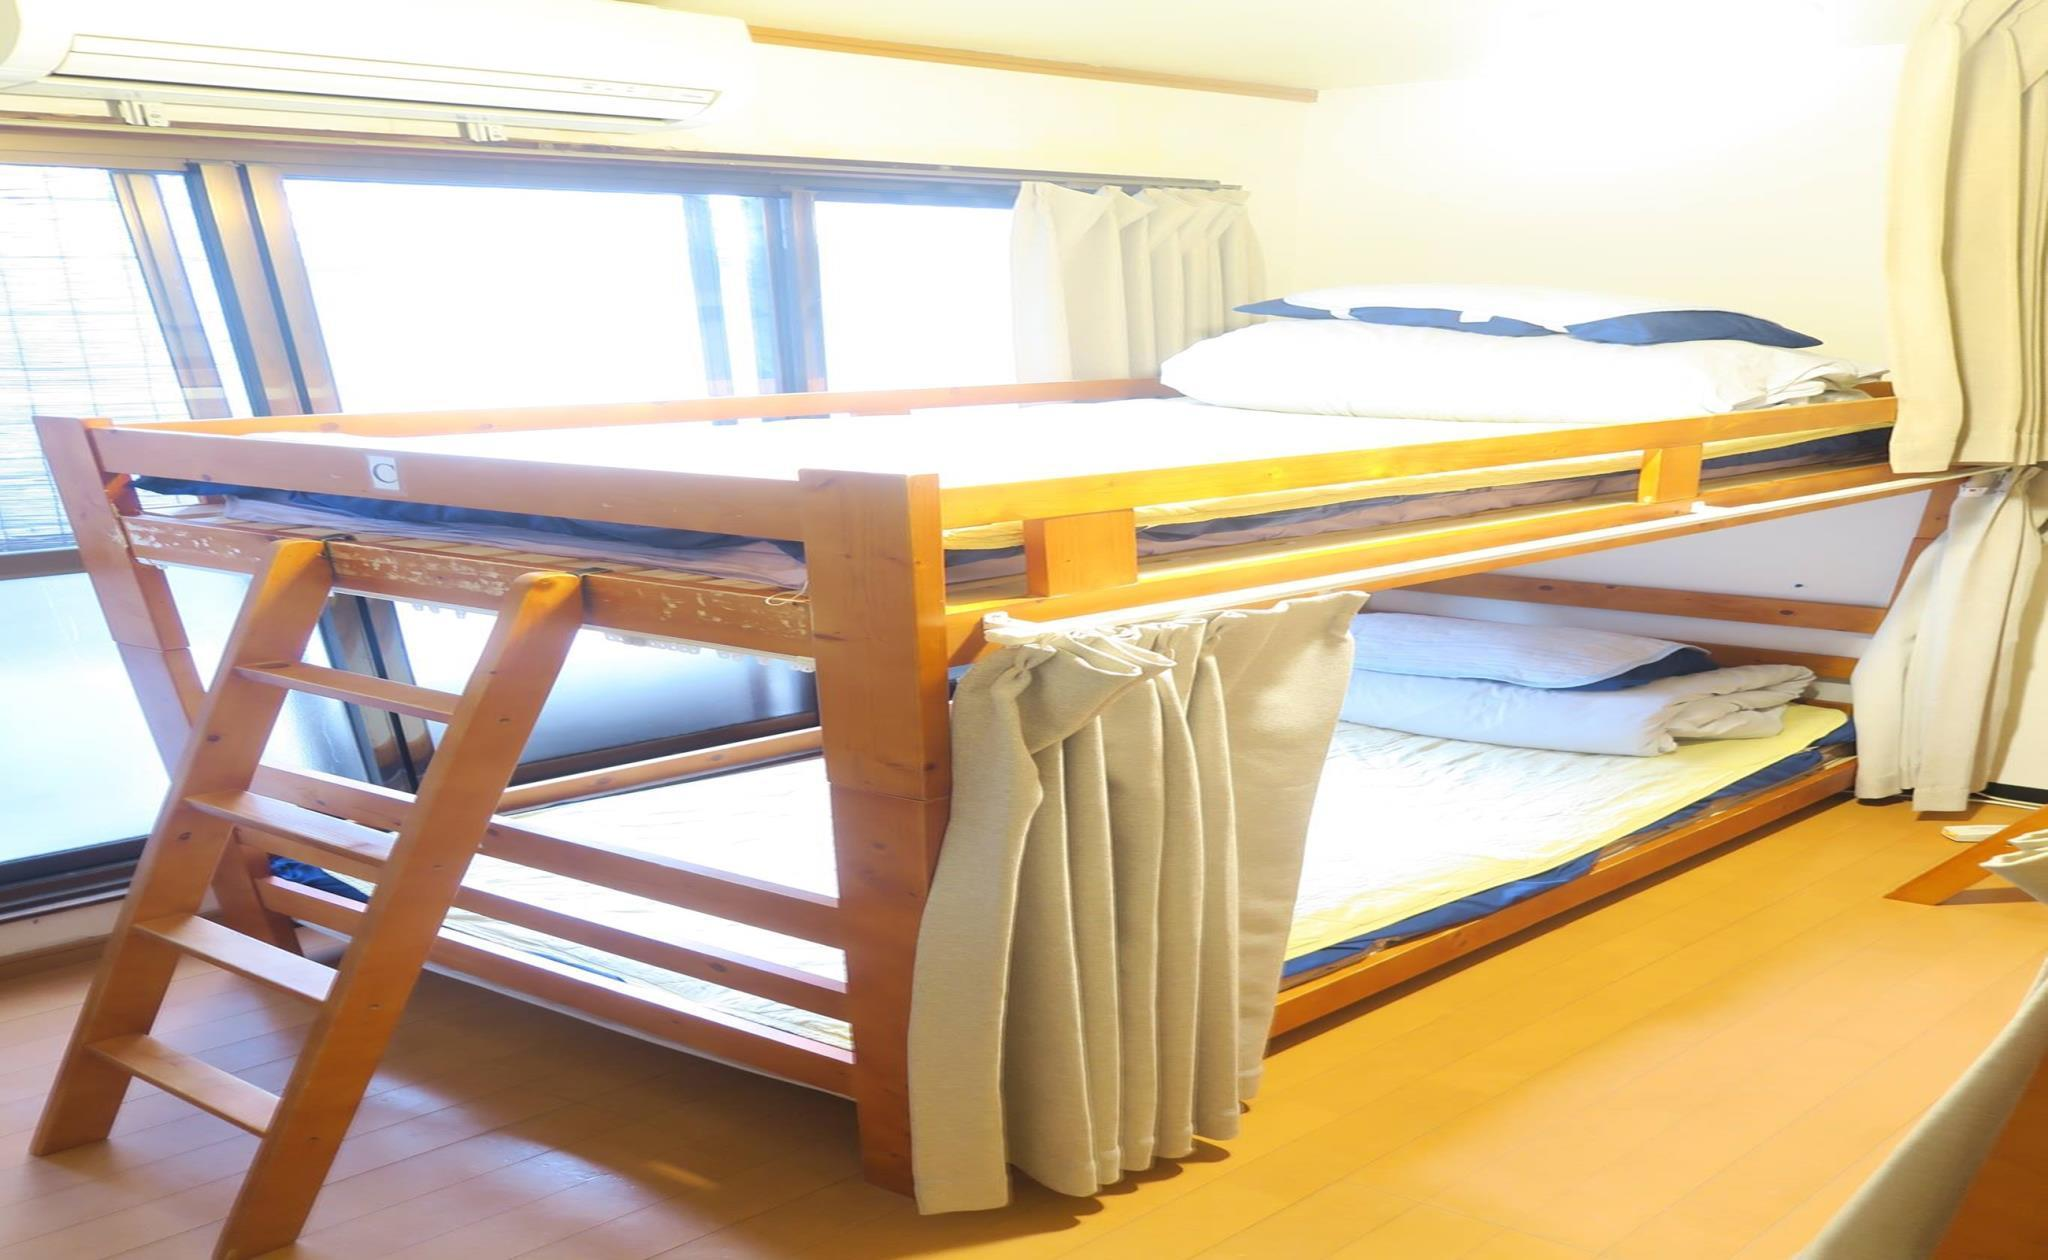 Køjeseng i Sovesal - Blandet (Bunk Bed in Mixed Dormitory Room)